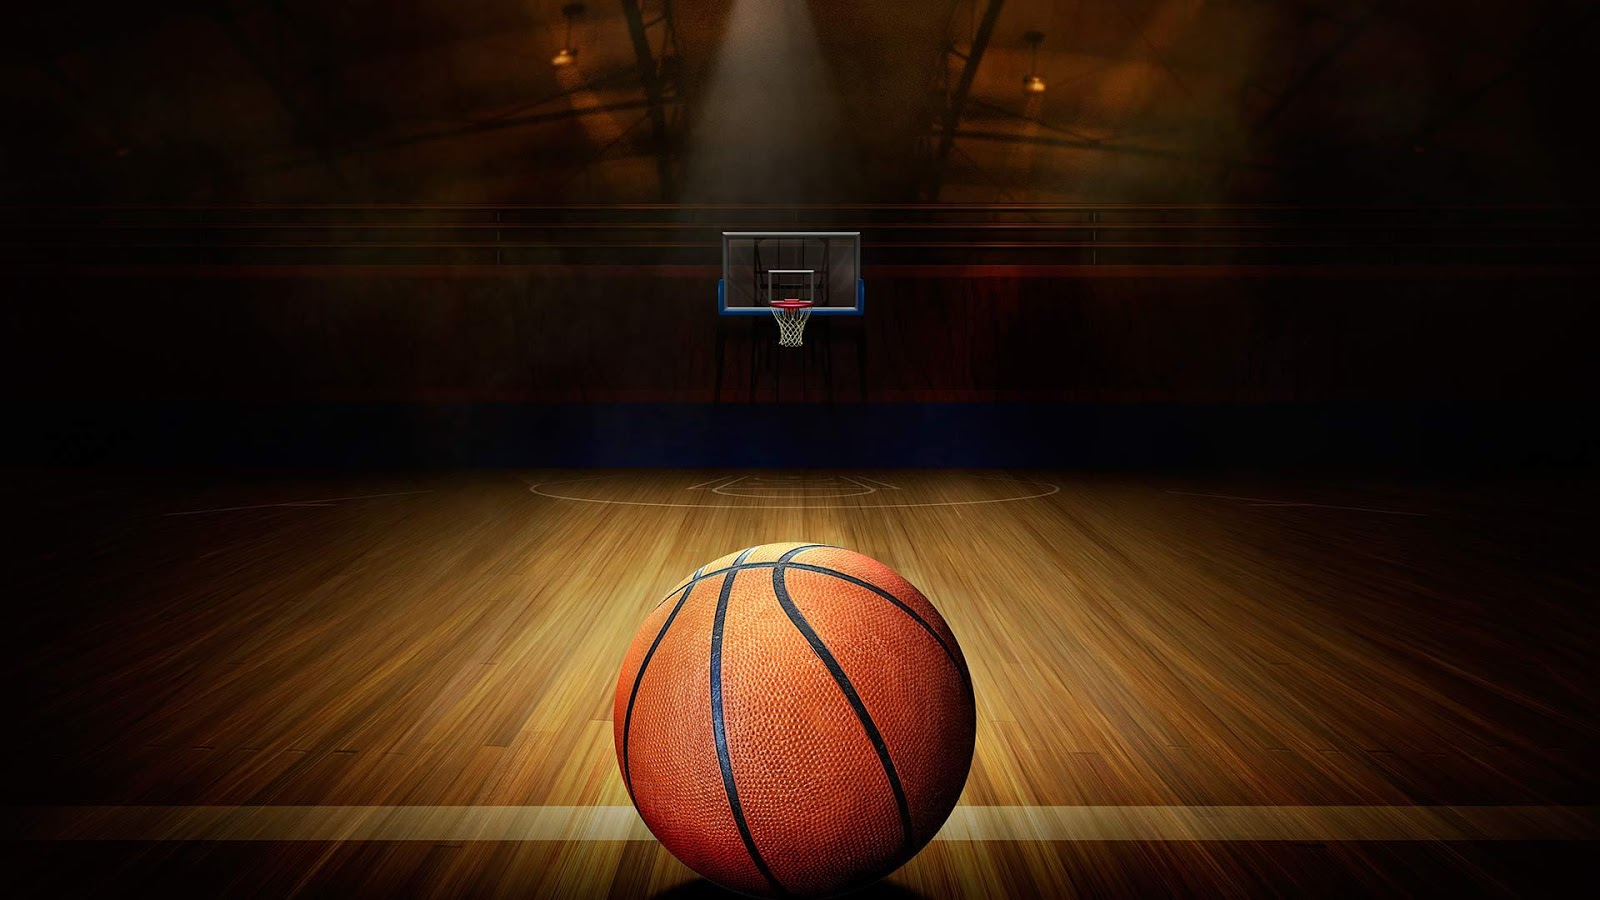 Awesome Basketball Wallpapers 14 1600x900